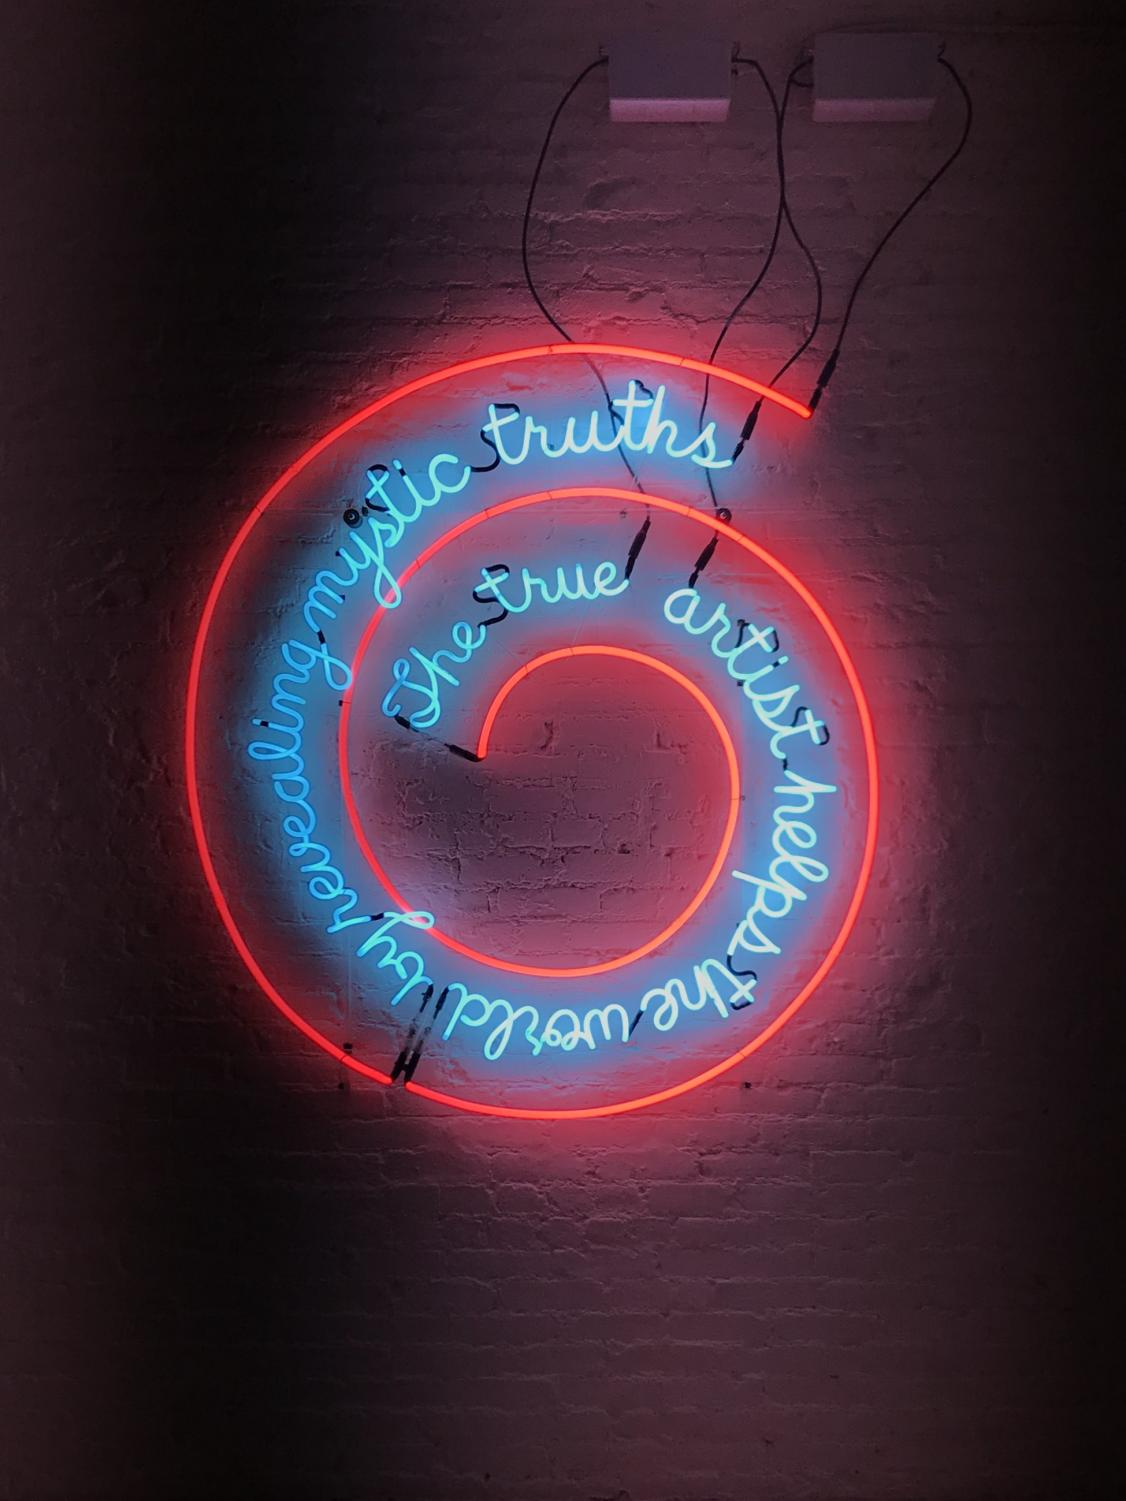 Bruce Nauman is known for creating neon light displays.